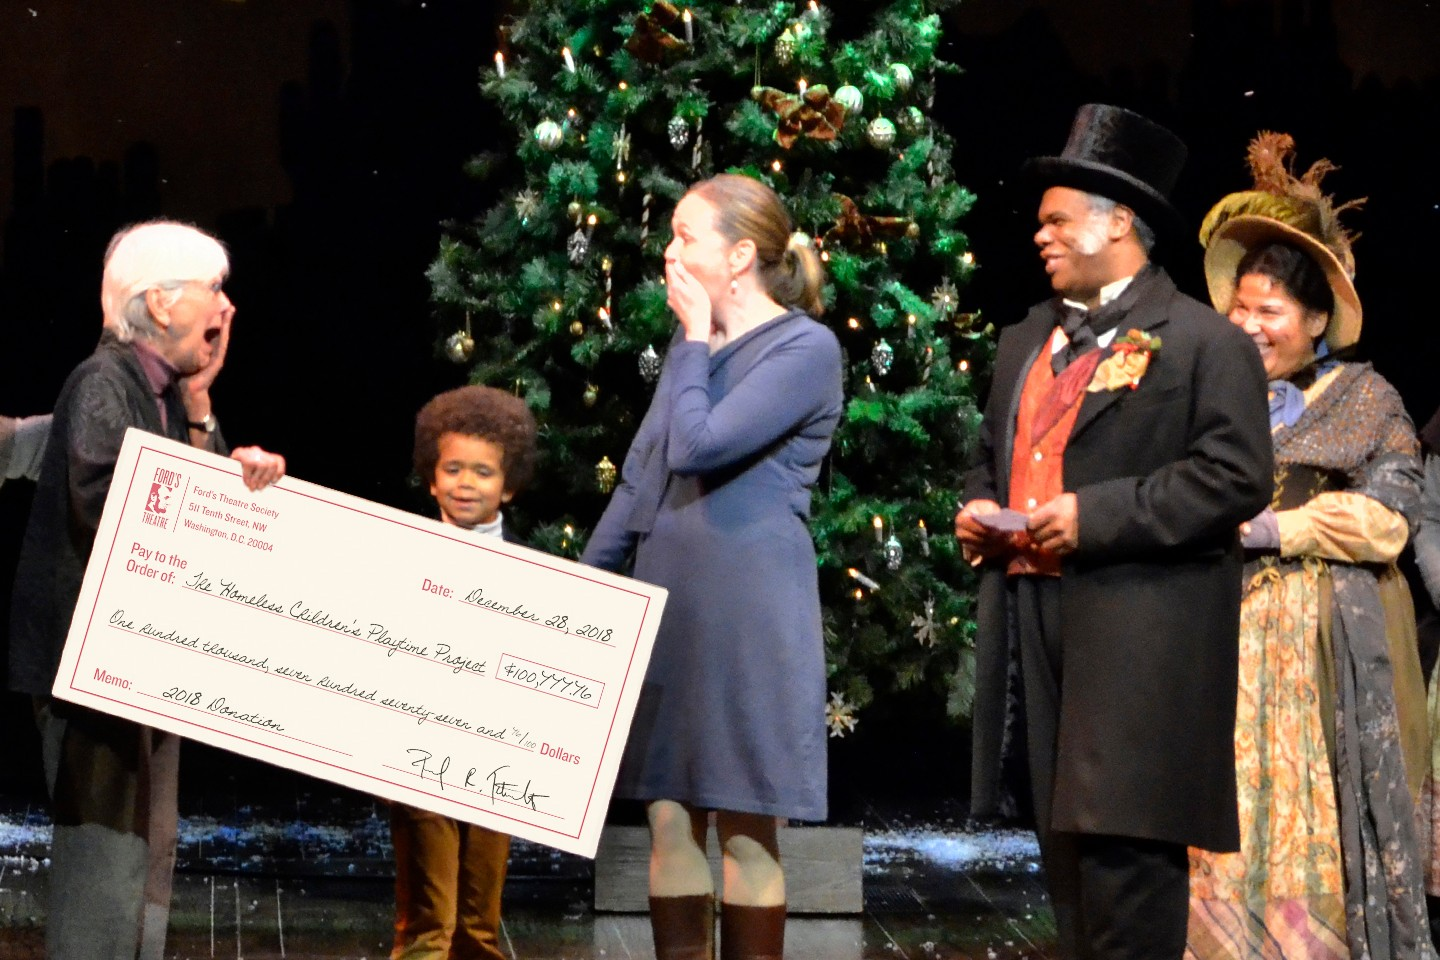 Onstage, two actors wearing Victoria-period clothes and top hats hand a large ceremonial check to two women wearing modern clothing.